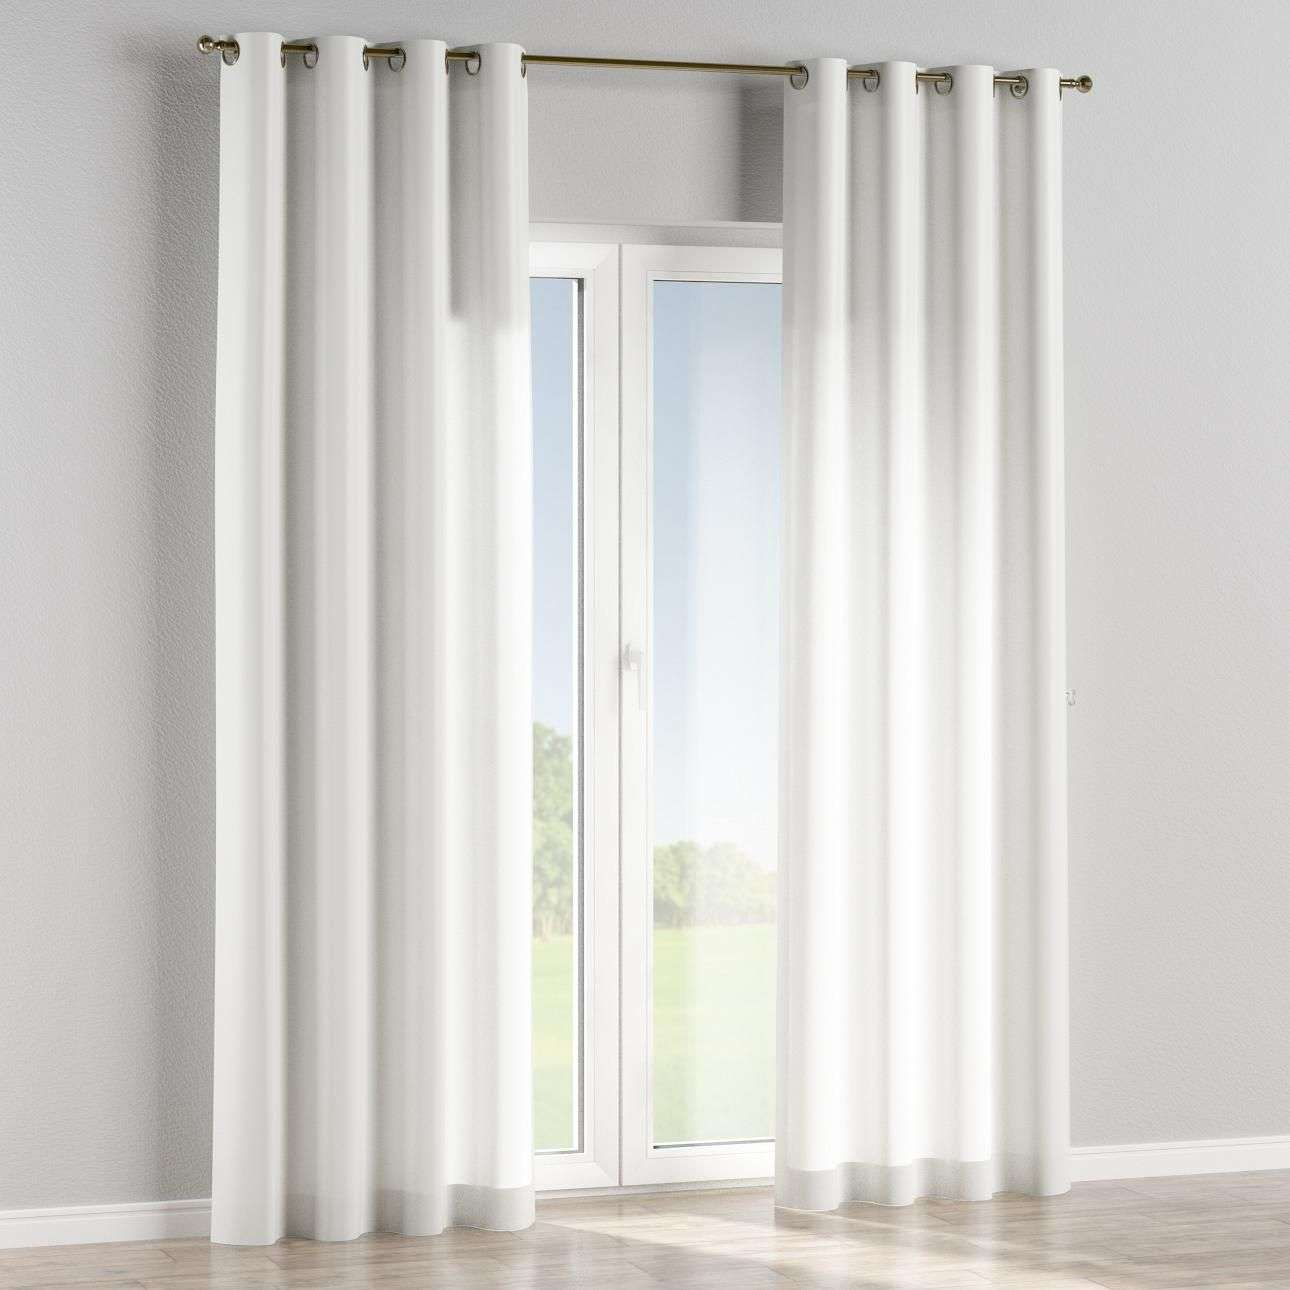 Eyelet curtains in collection Flowers, fabric: 311-10